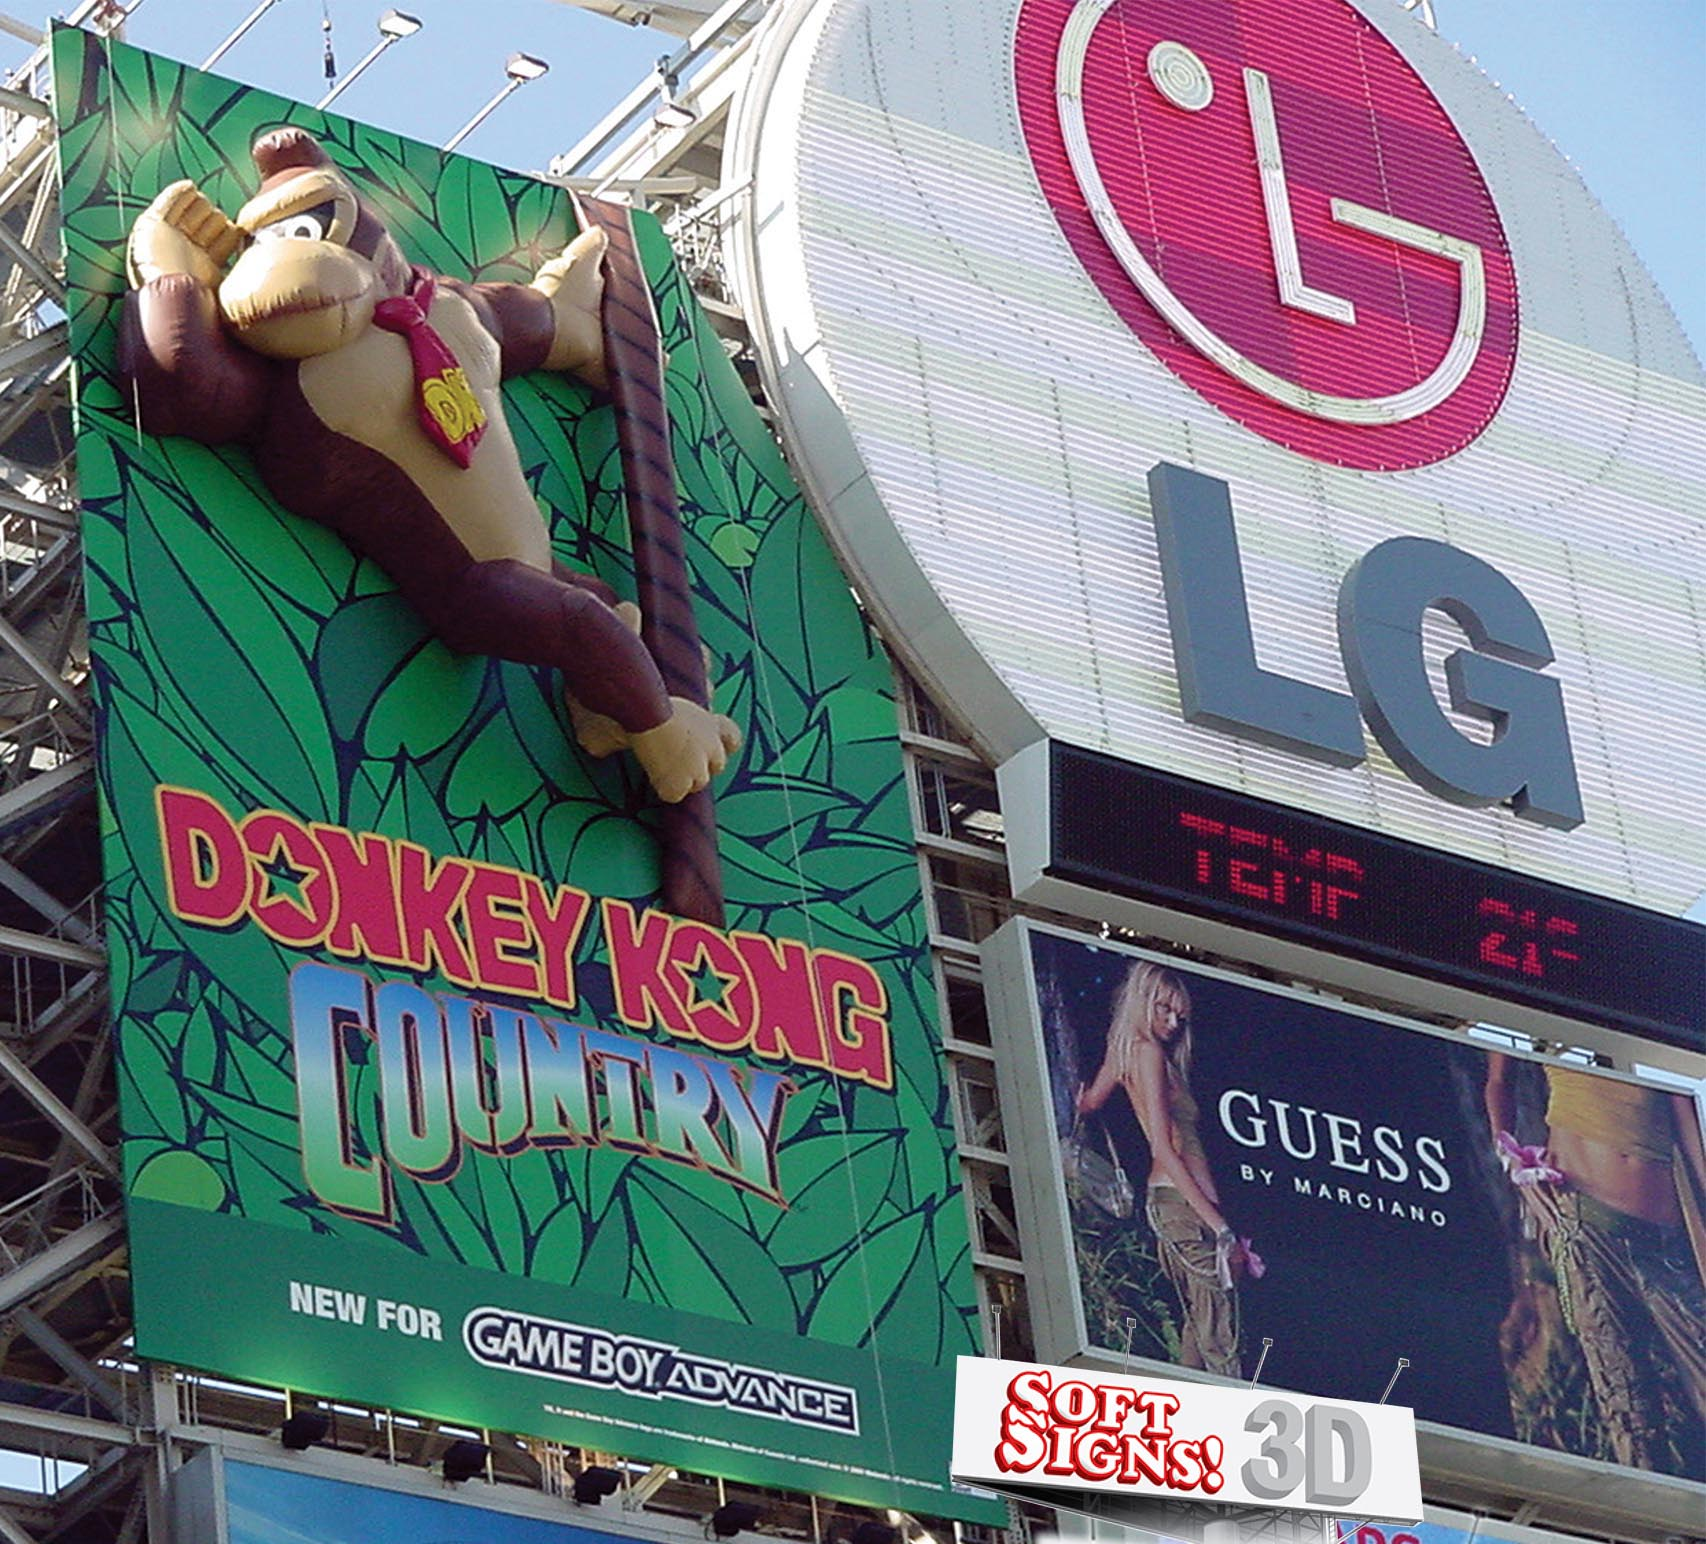 Soft Signs 3D Donkey Kong